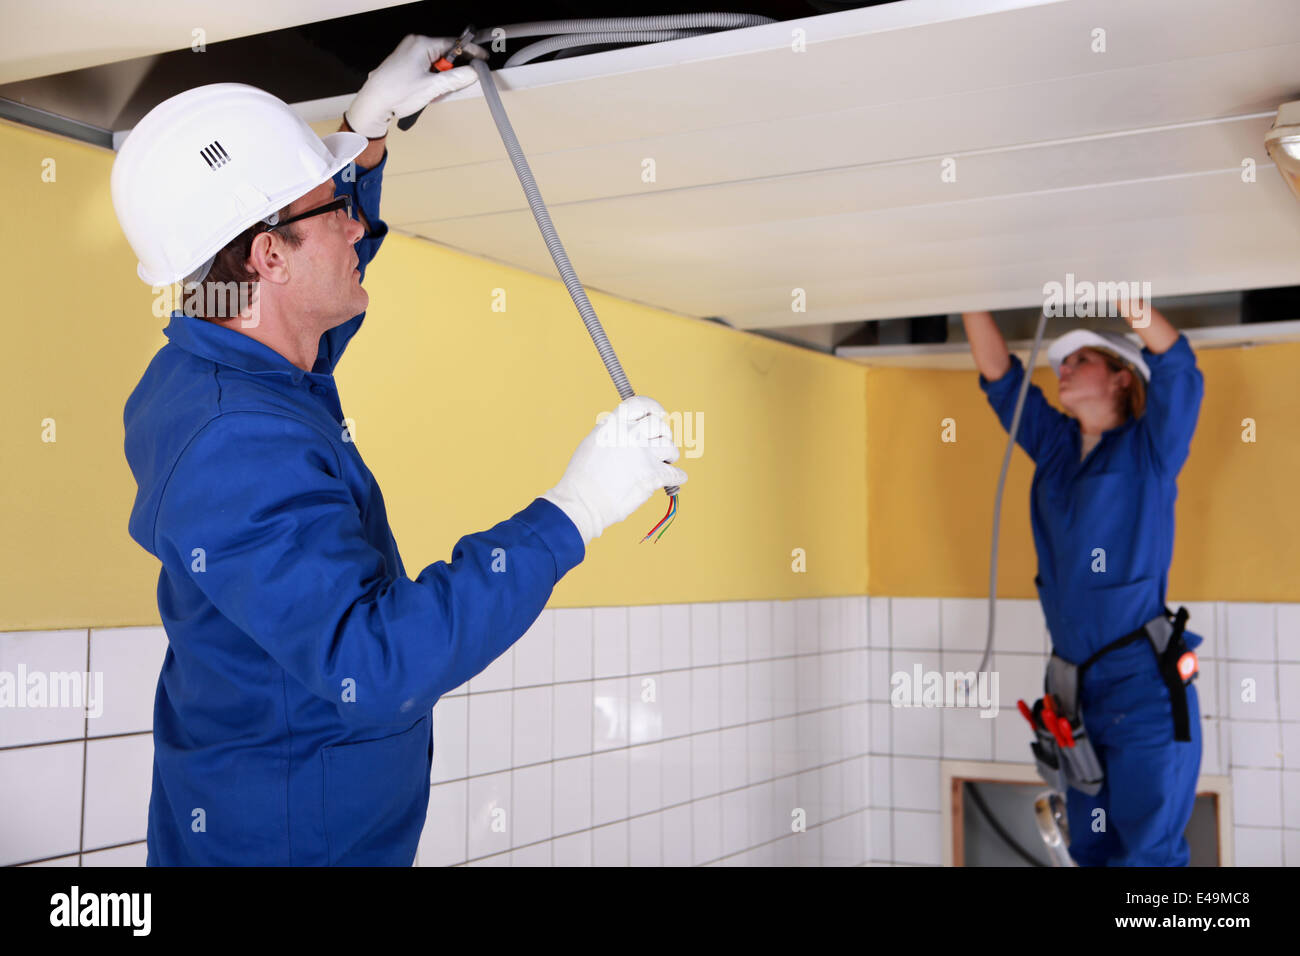 Electricians Wiring Bathroom Stock Photos In Two Repairing Ceiling Image